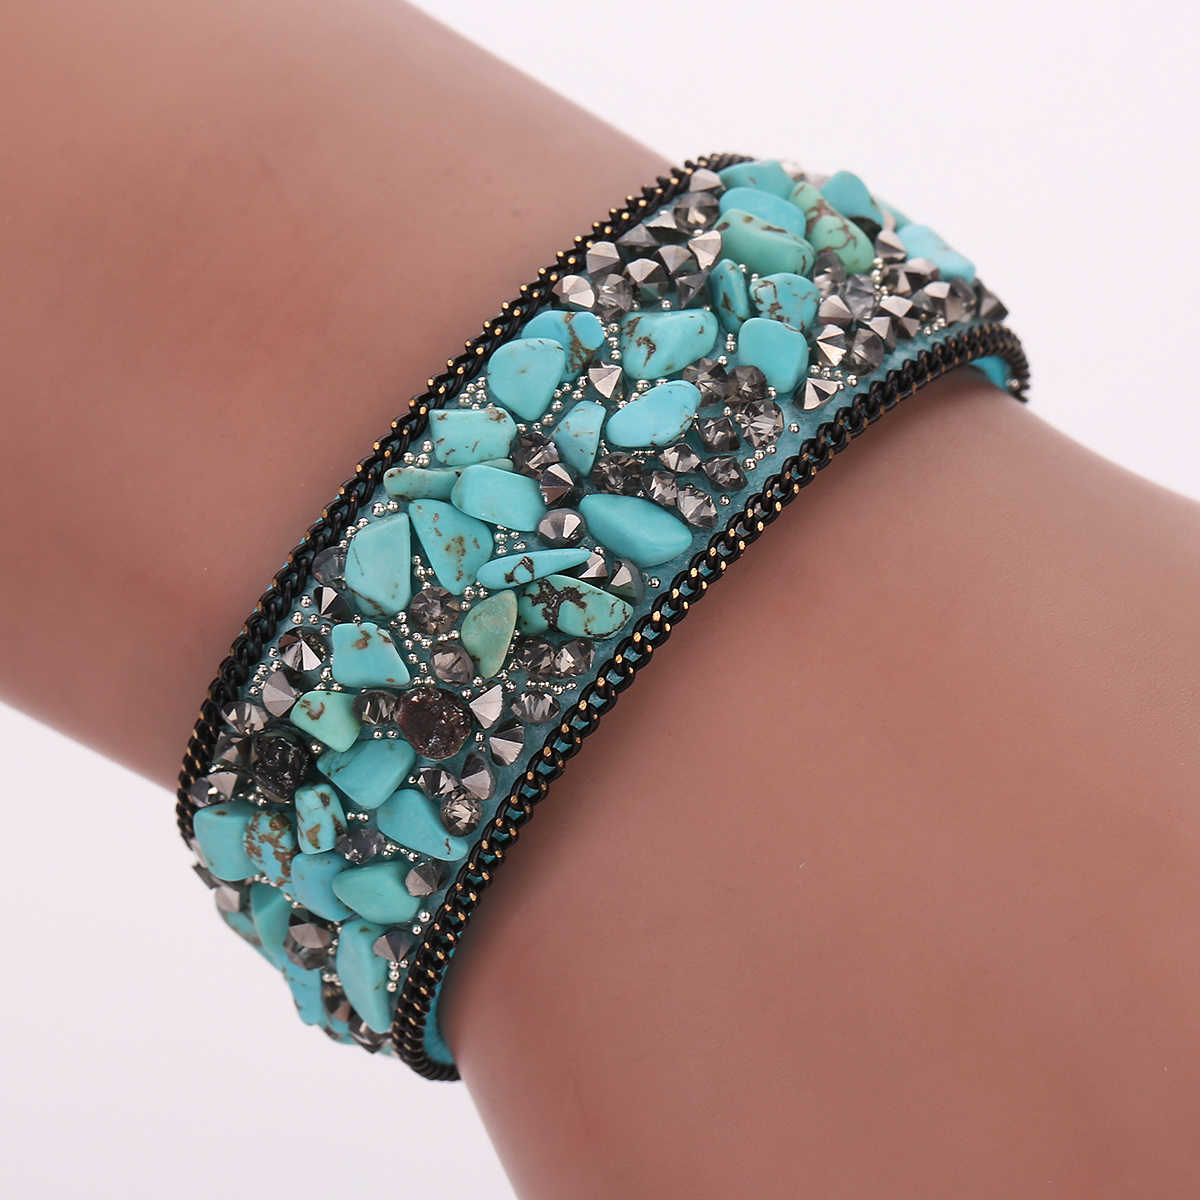 pulseras mujer moda 2018 Fashion Women Leather Bracelet Bangle with Stones Bracelets Female Jewelry Accessories Cheap Price